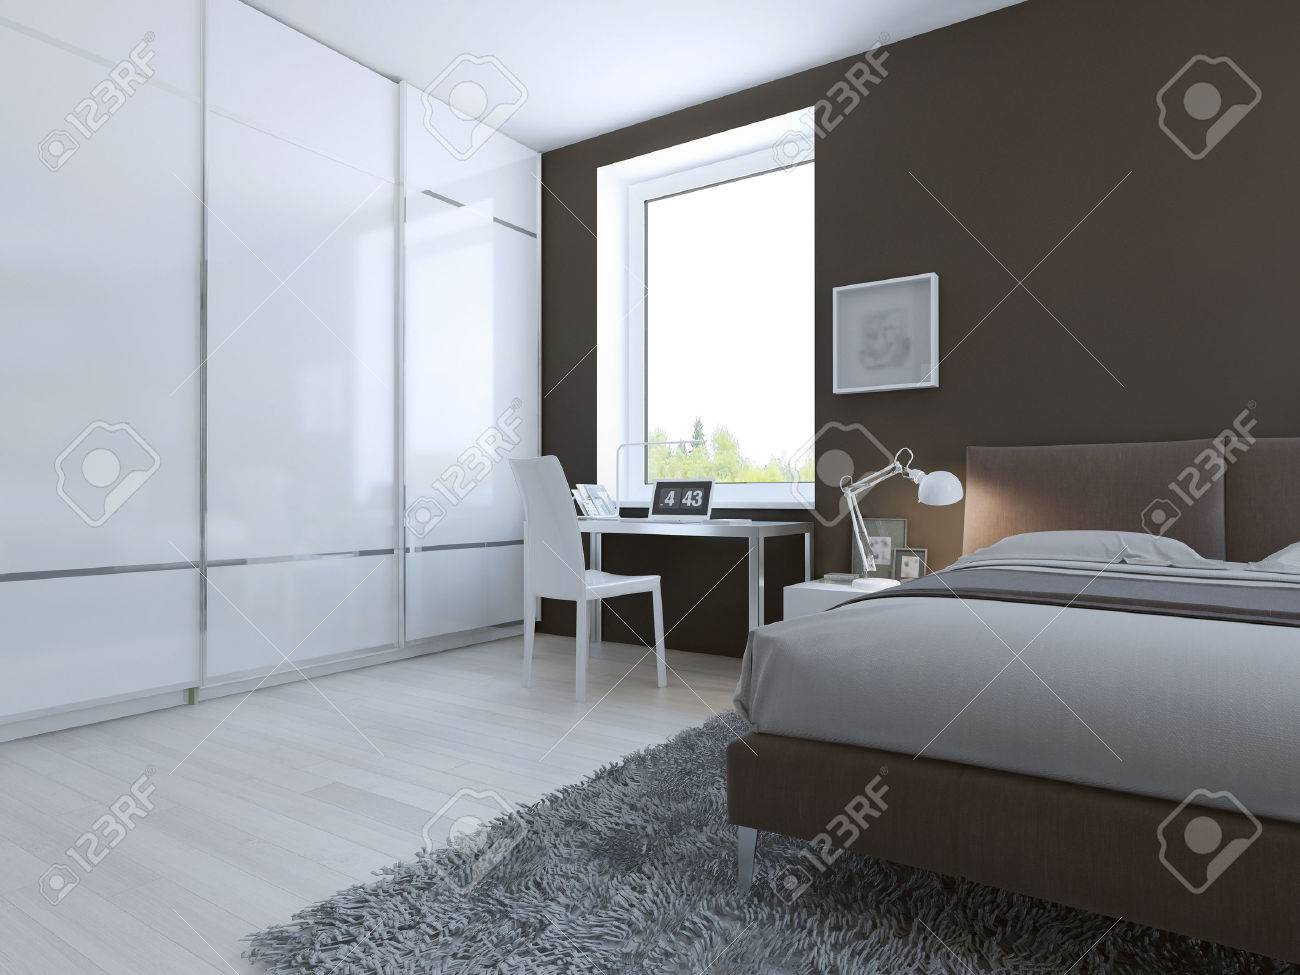 Work Place In Hightech Bedroom D Render Stock Photo Picture - High tech bedroom design